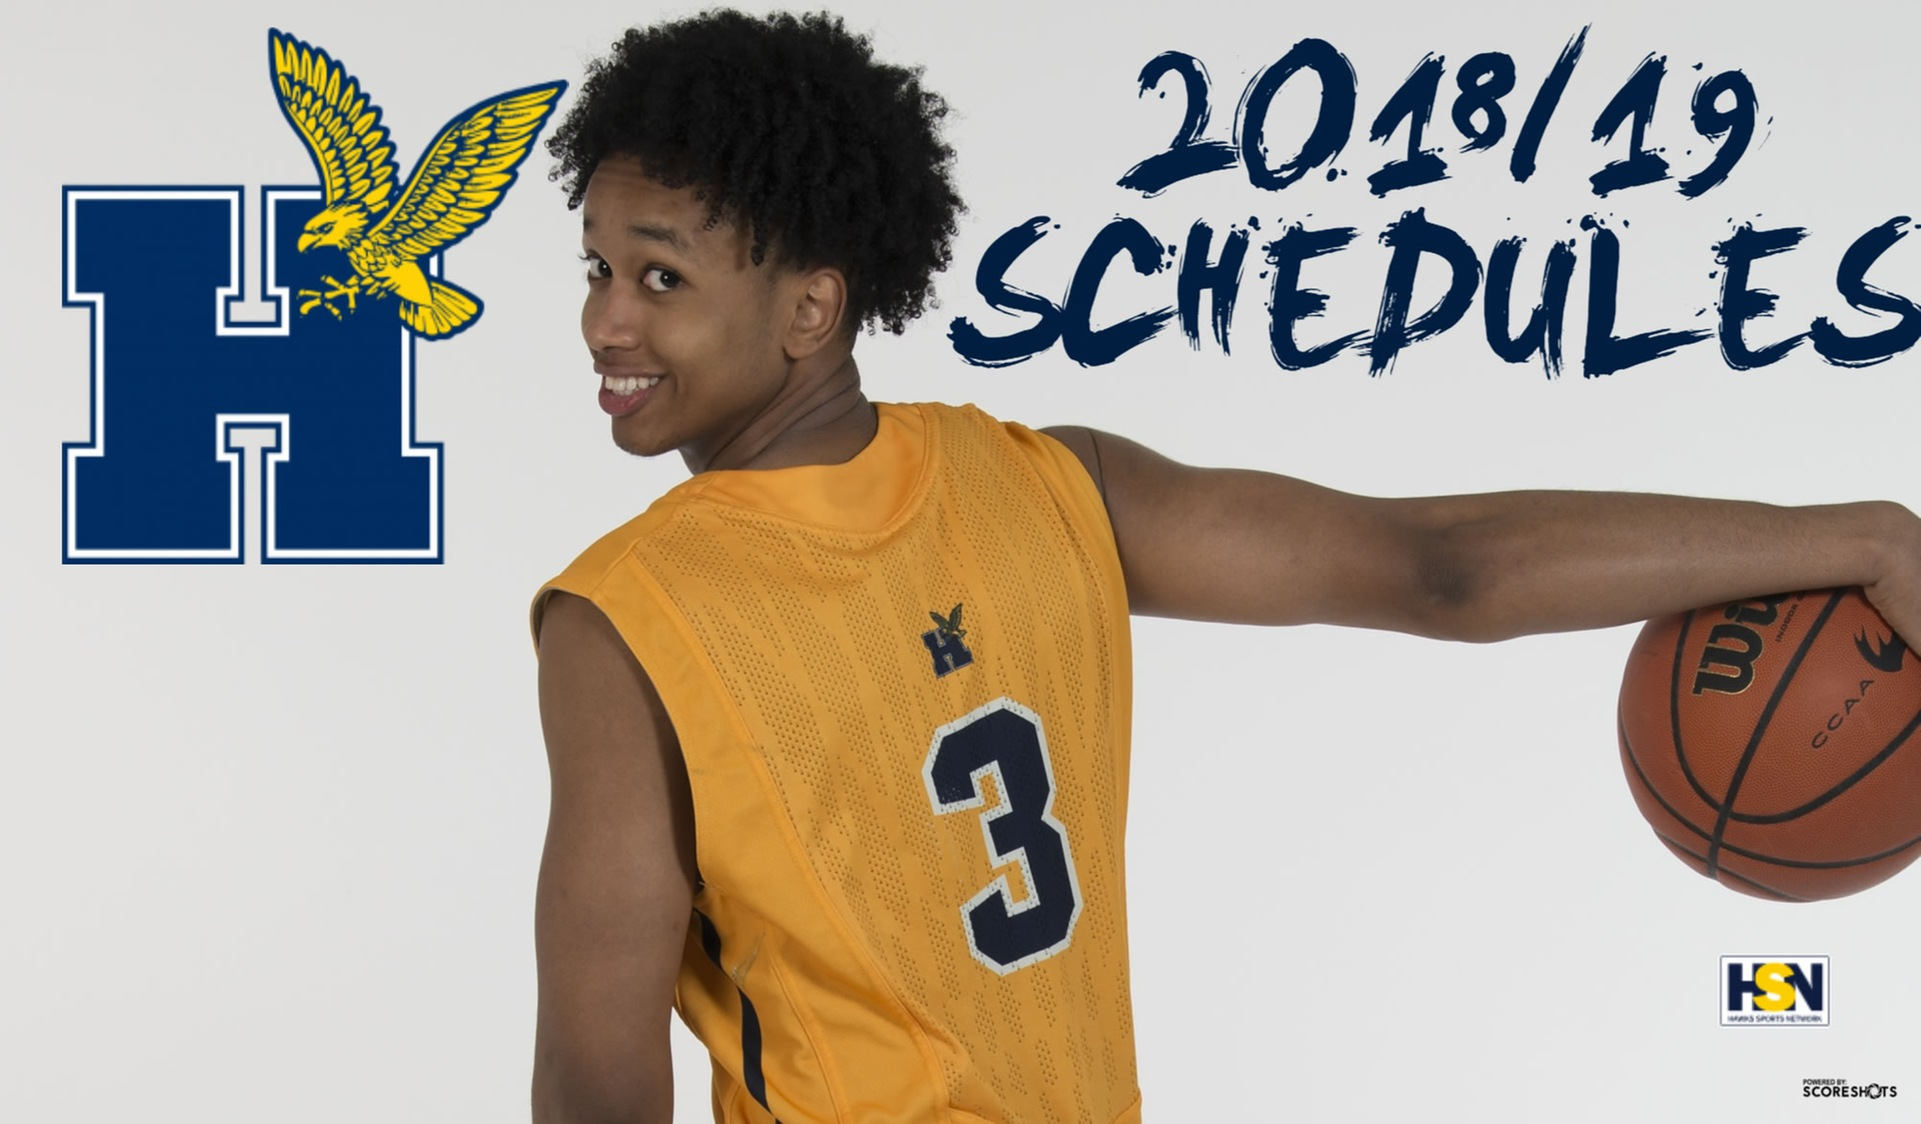 2018/19 HAWKS MEN'S BASKETBALL SCHEDULES RELEASED